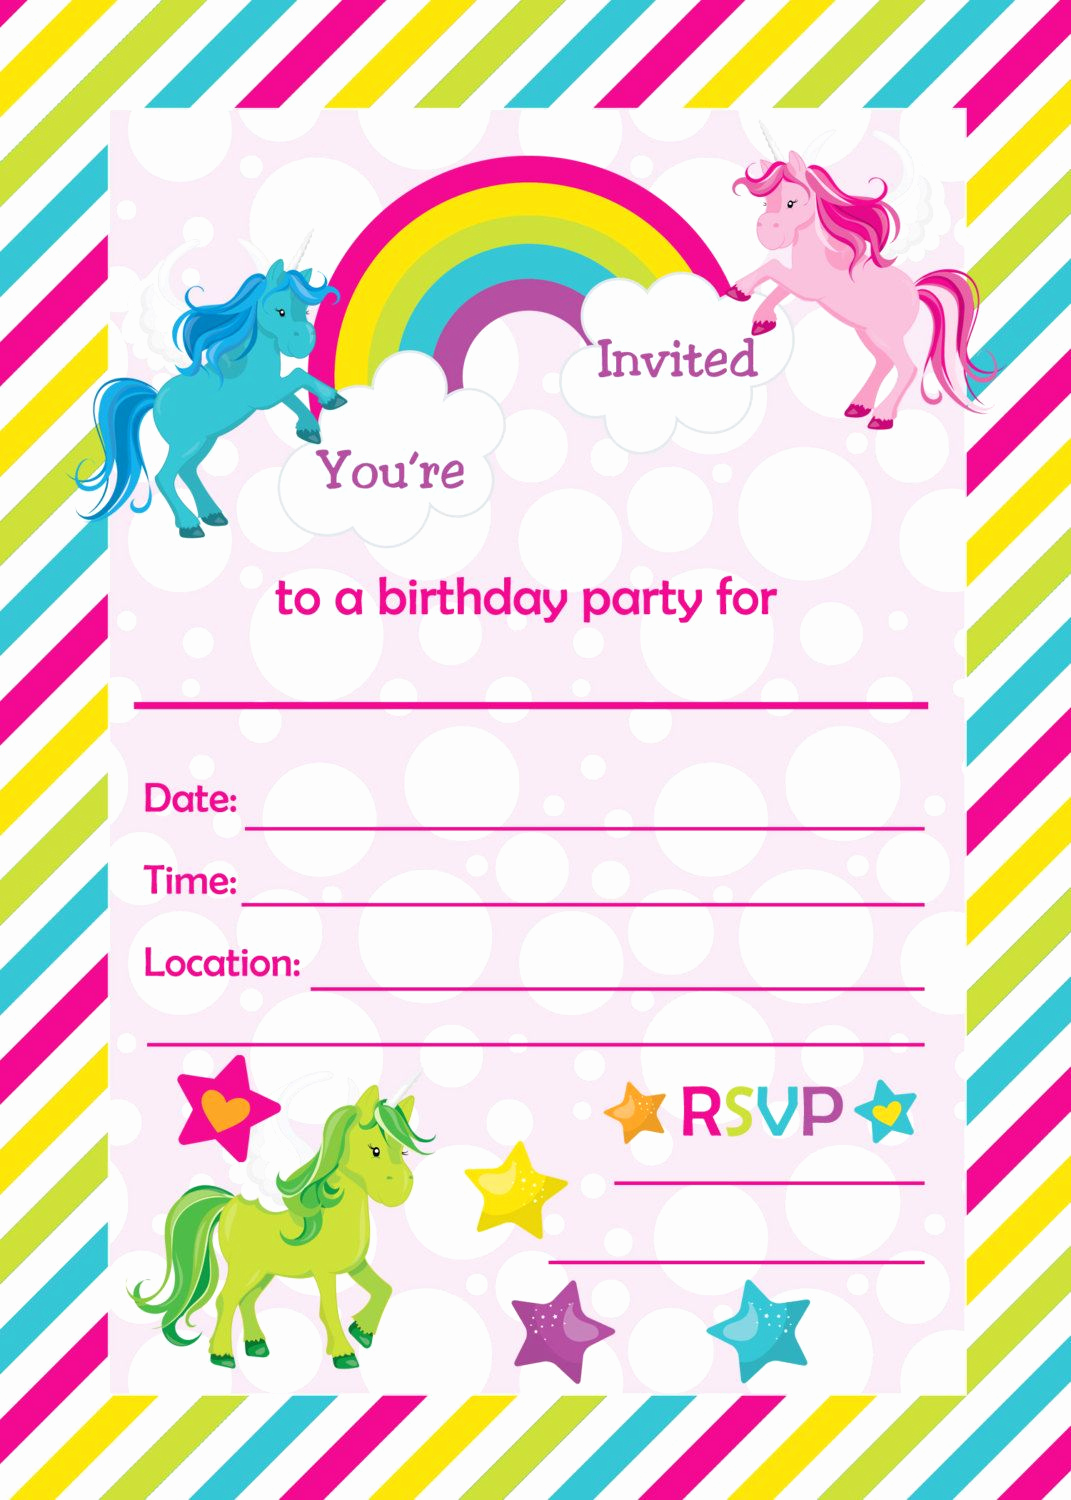 Kids Birthday Party Invitation Template New Fill In Birthday Party Invitations Printable Rainbows and